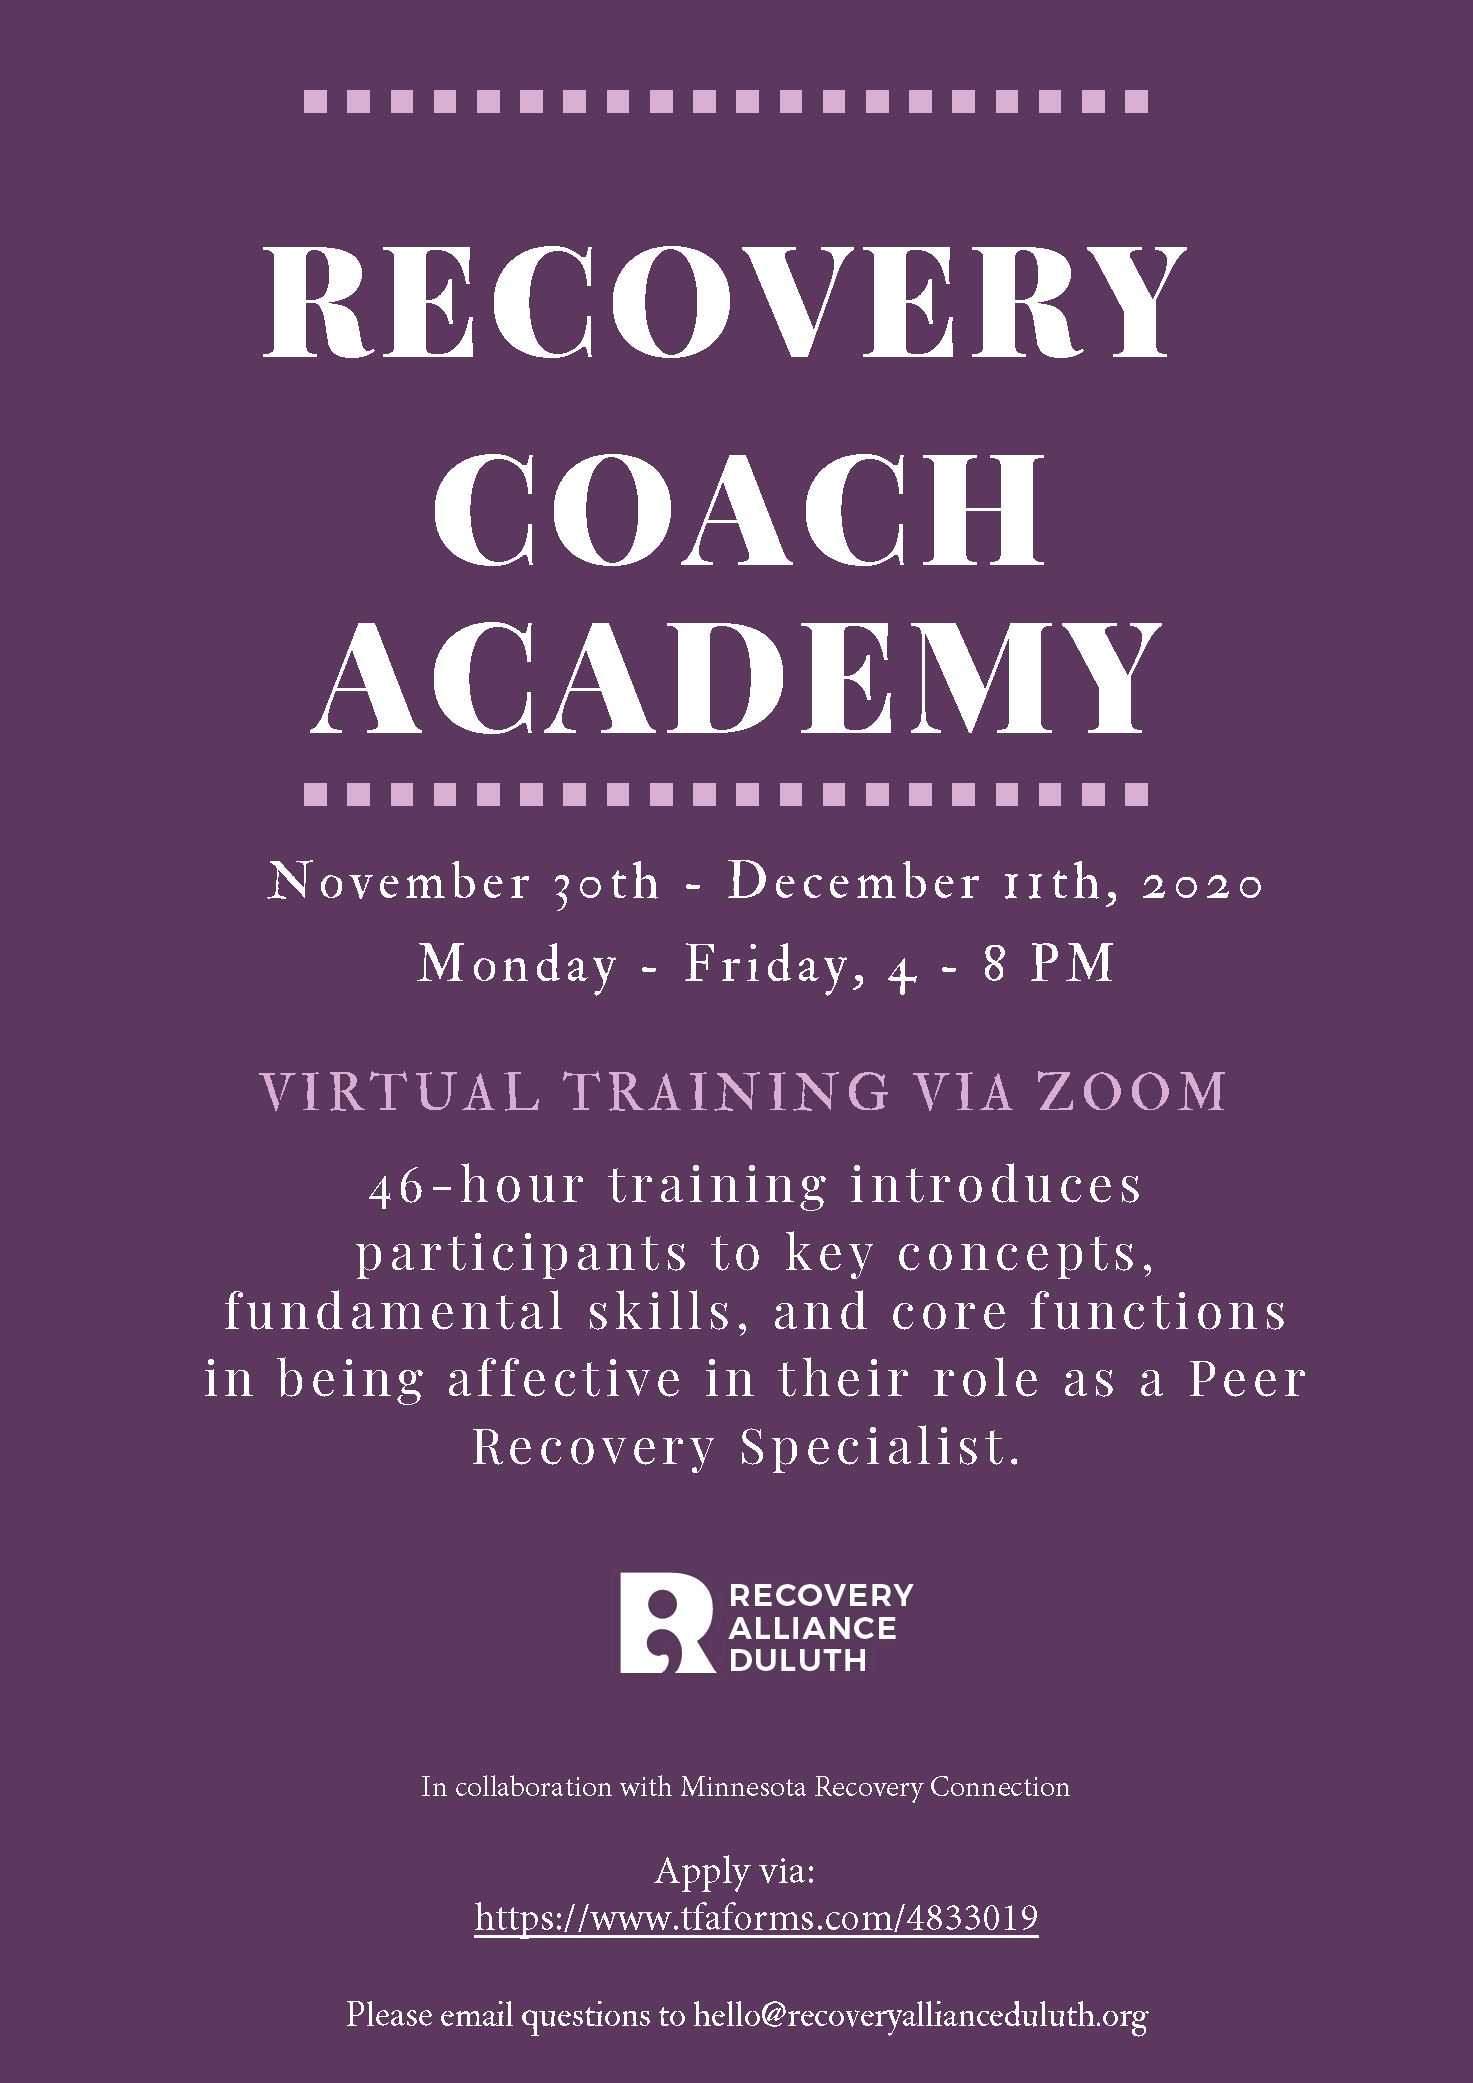 Recovery Coach Academy - Virtual Training